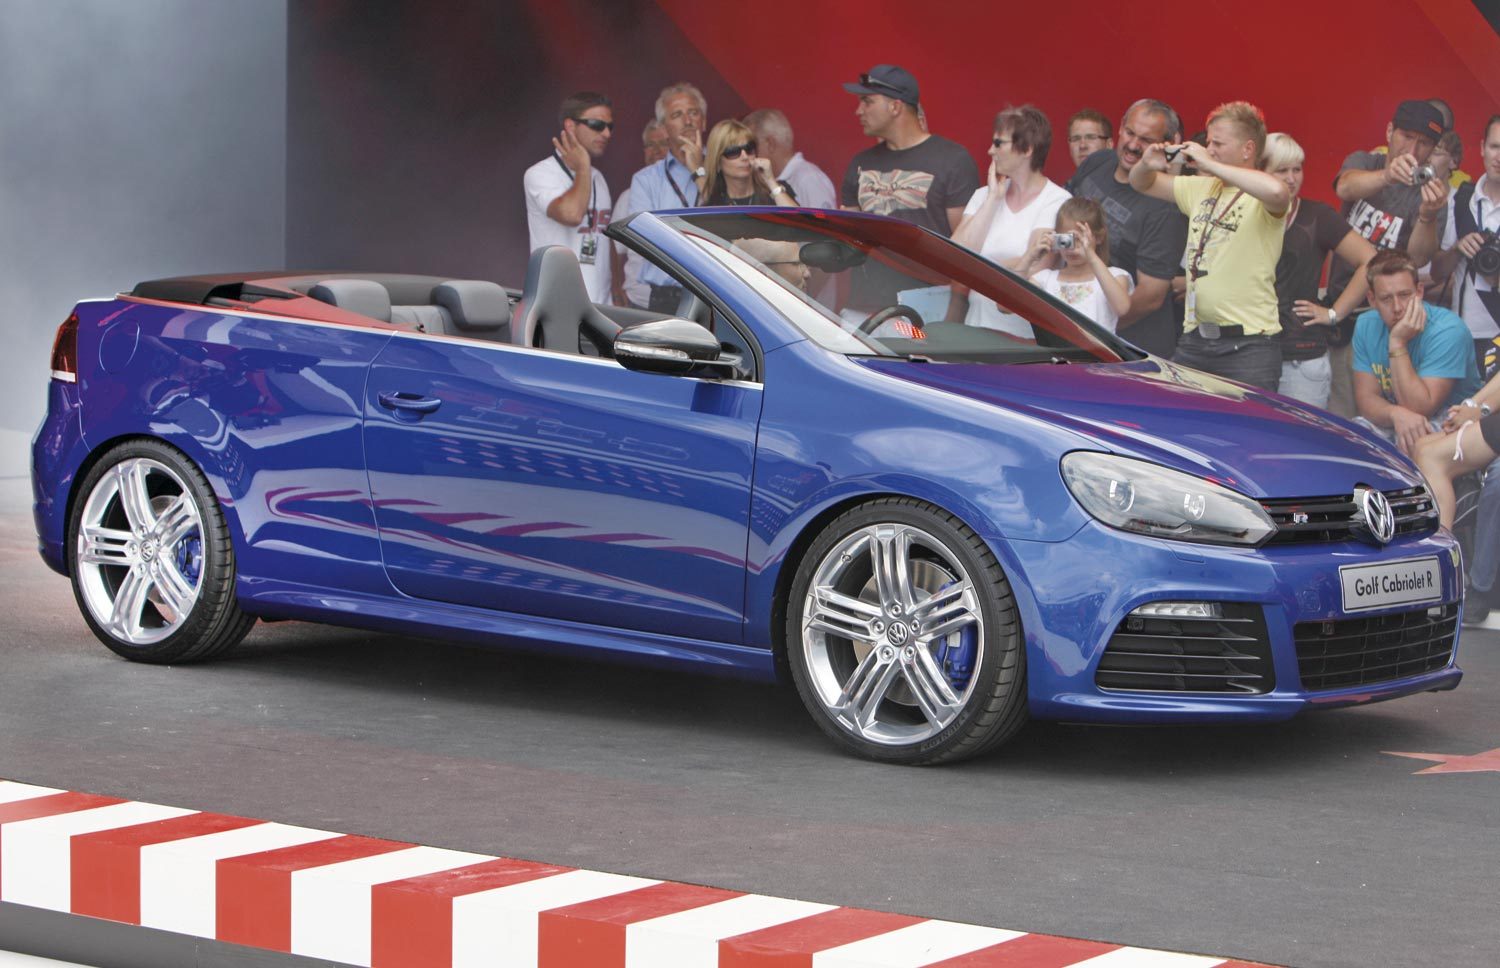 2013 Volkswagen Golf R Cabriolet Side View At Show1